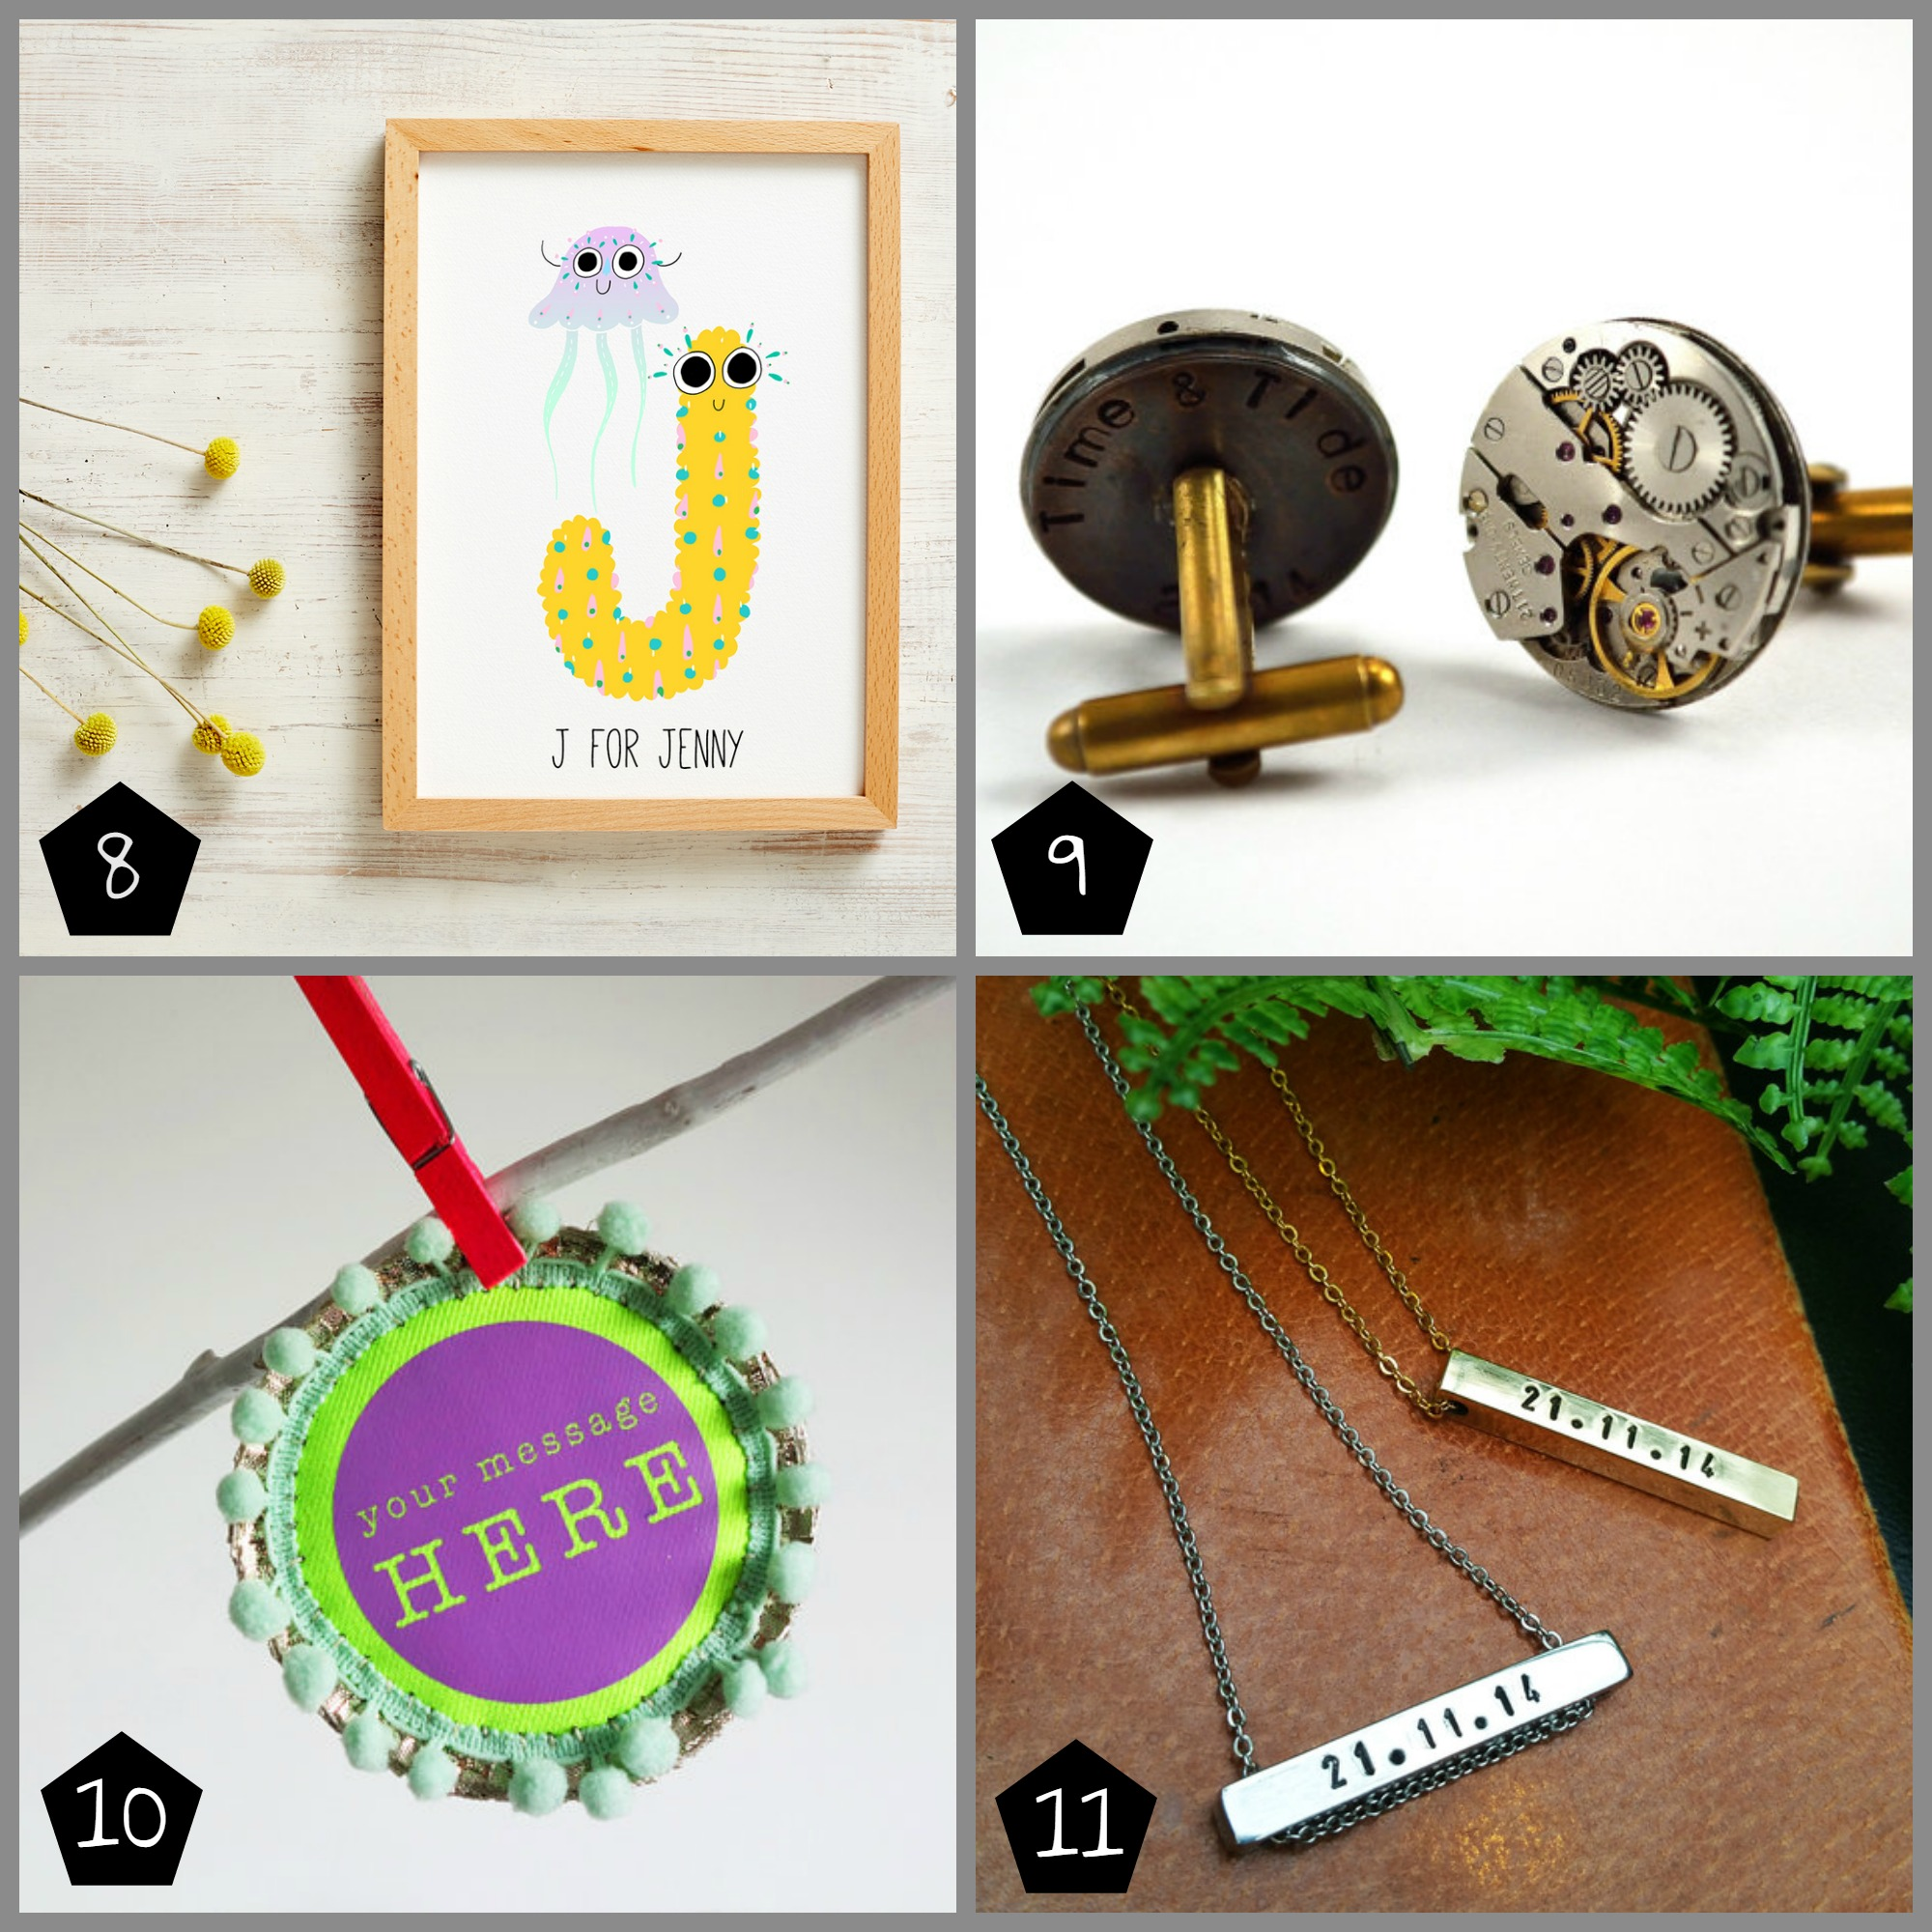 8. Andsmile  offers custom initial and name Alphabet Prints (The London Illustration Fair - 05 Dec,Peckham - 12 Dec)  9. Chanchala has a range of jewellery which can be personalised (Peckham - 13 Dec)  10. dAKOTA rAE dUST can create bespoke rosette pin badges featuring a message of your choice (Peckham -13 Dec)  11. LITTLESMITH will be offering a 10 minute on-site personalisation service at the market (Geffrye Museum - 17 Dec)